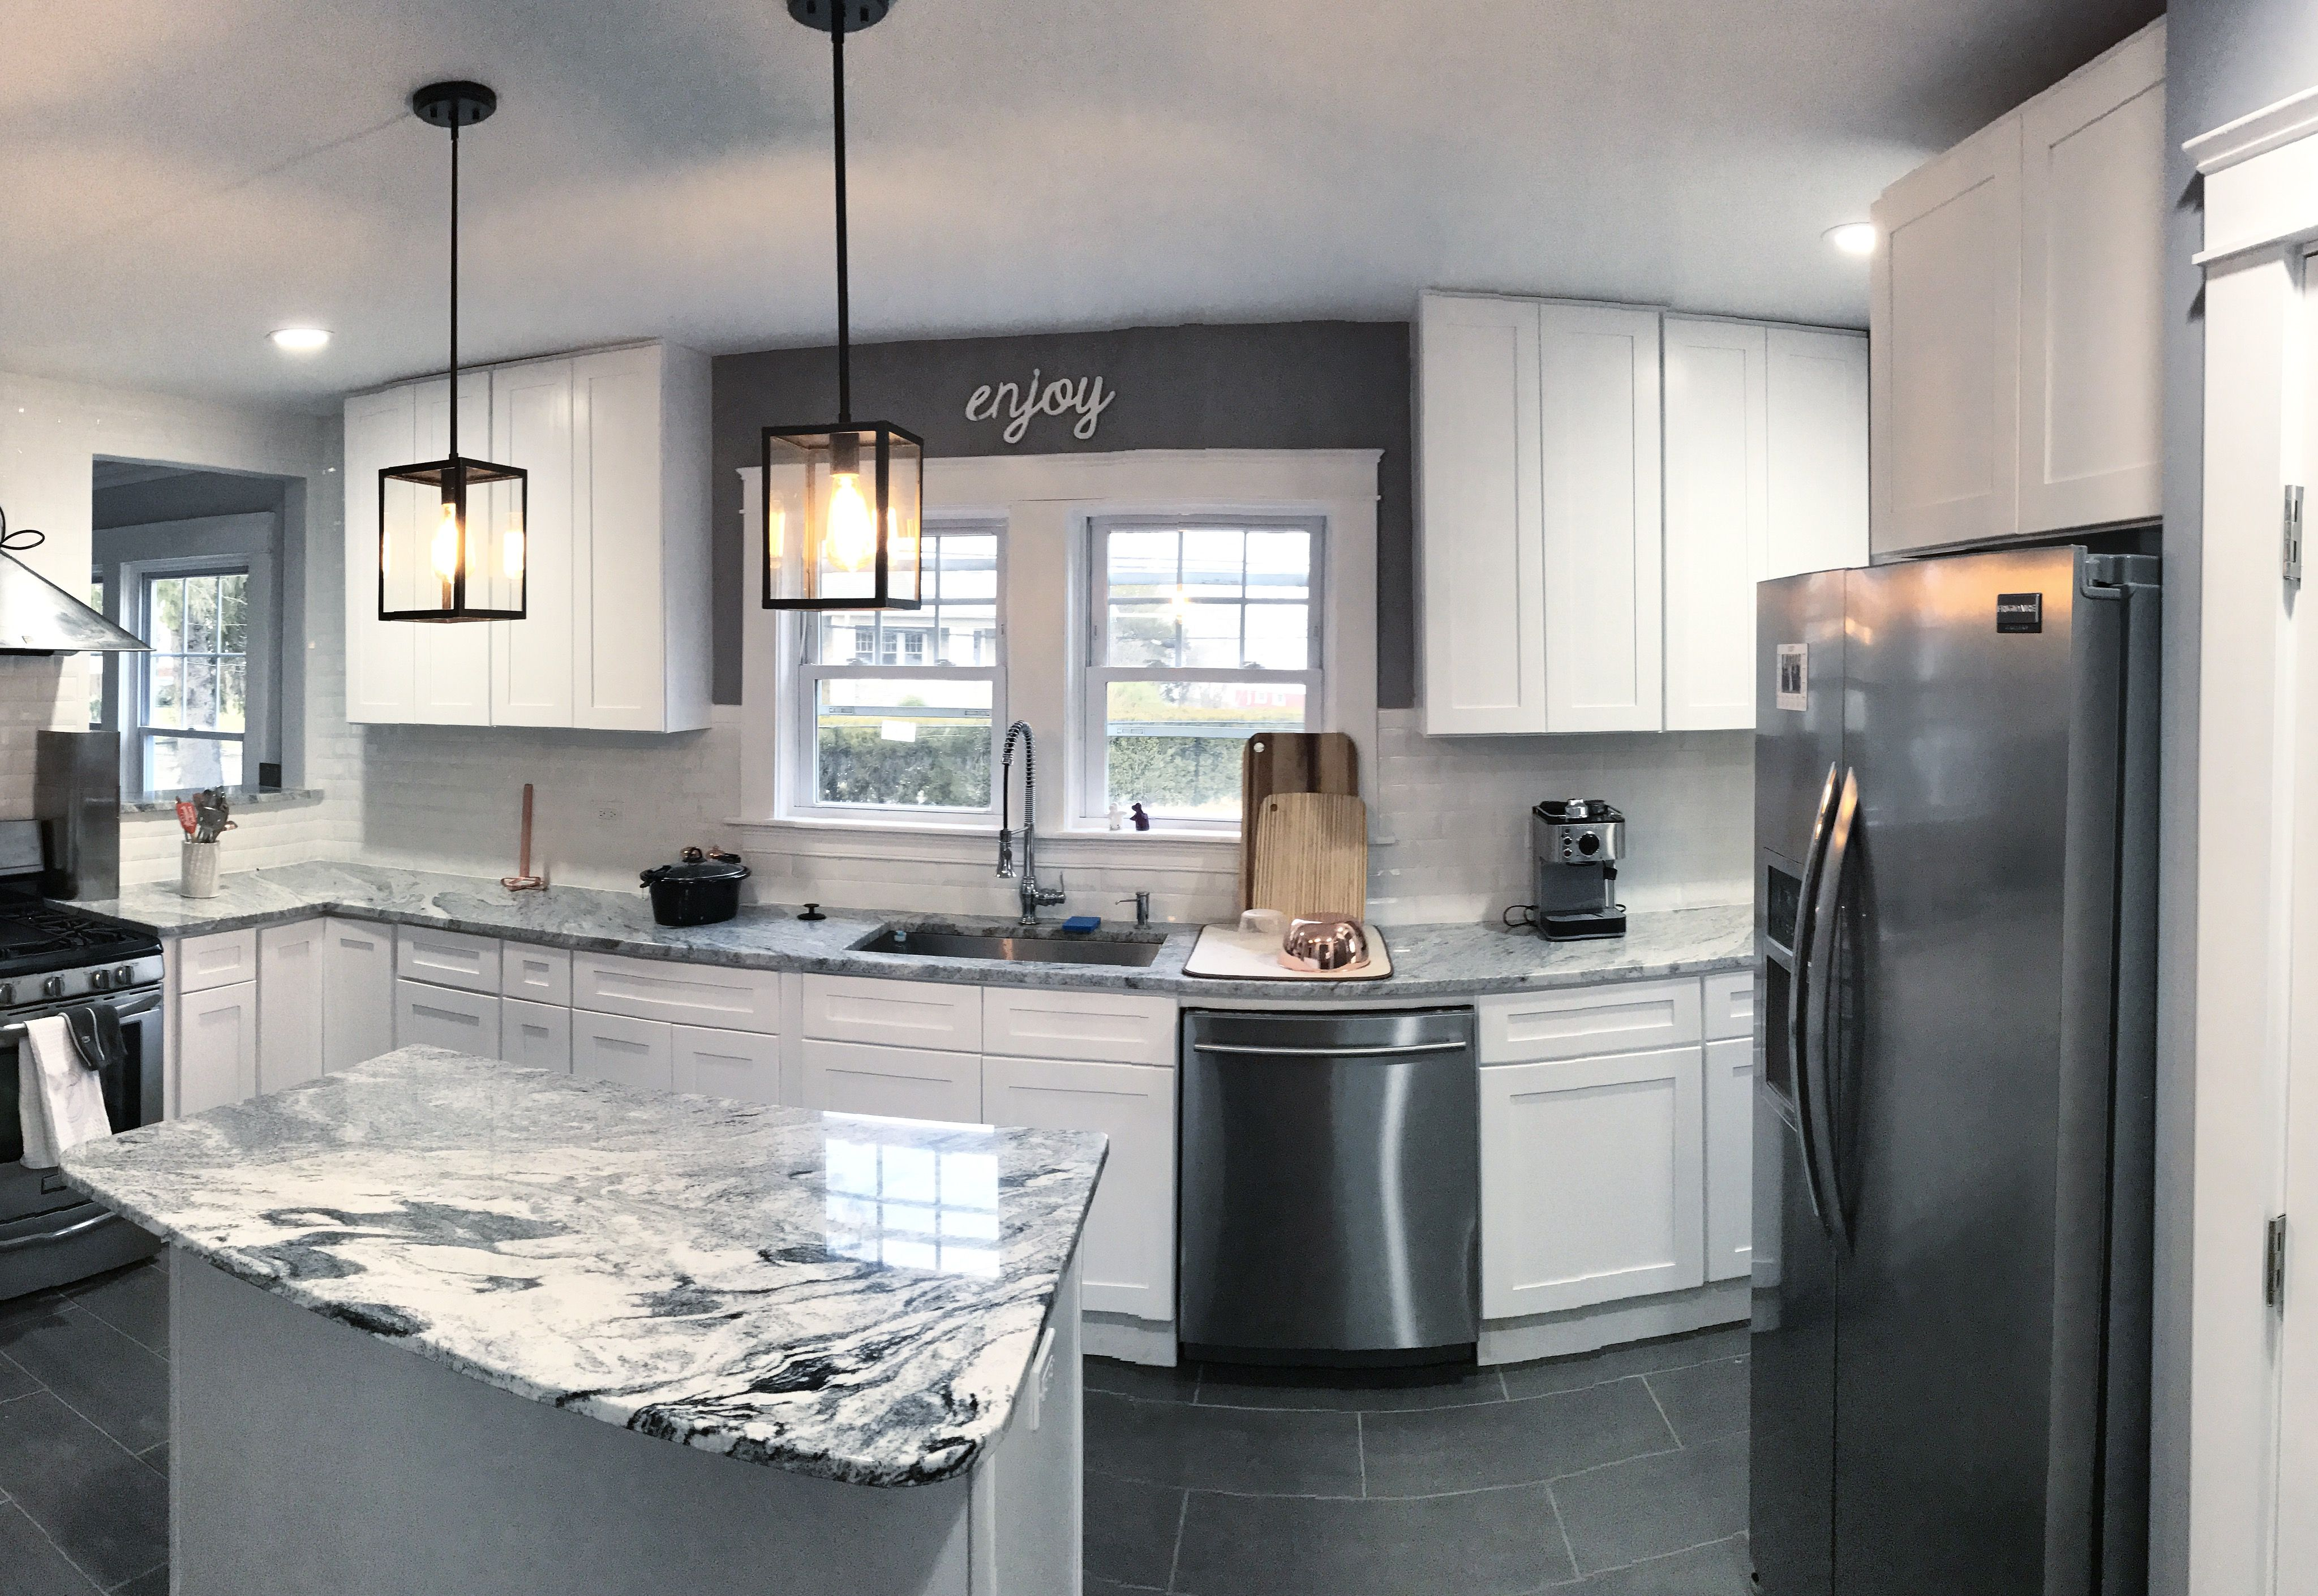 Our Modern kitchen in a 1920s home with White shaker